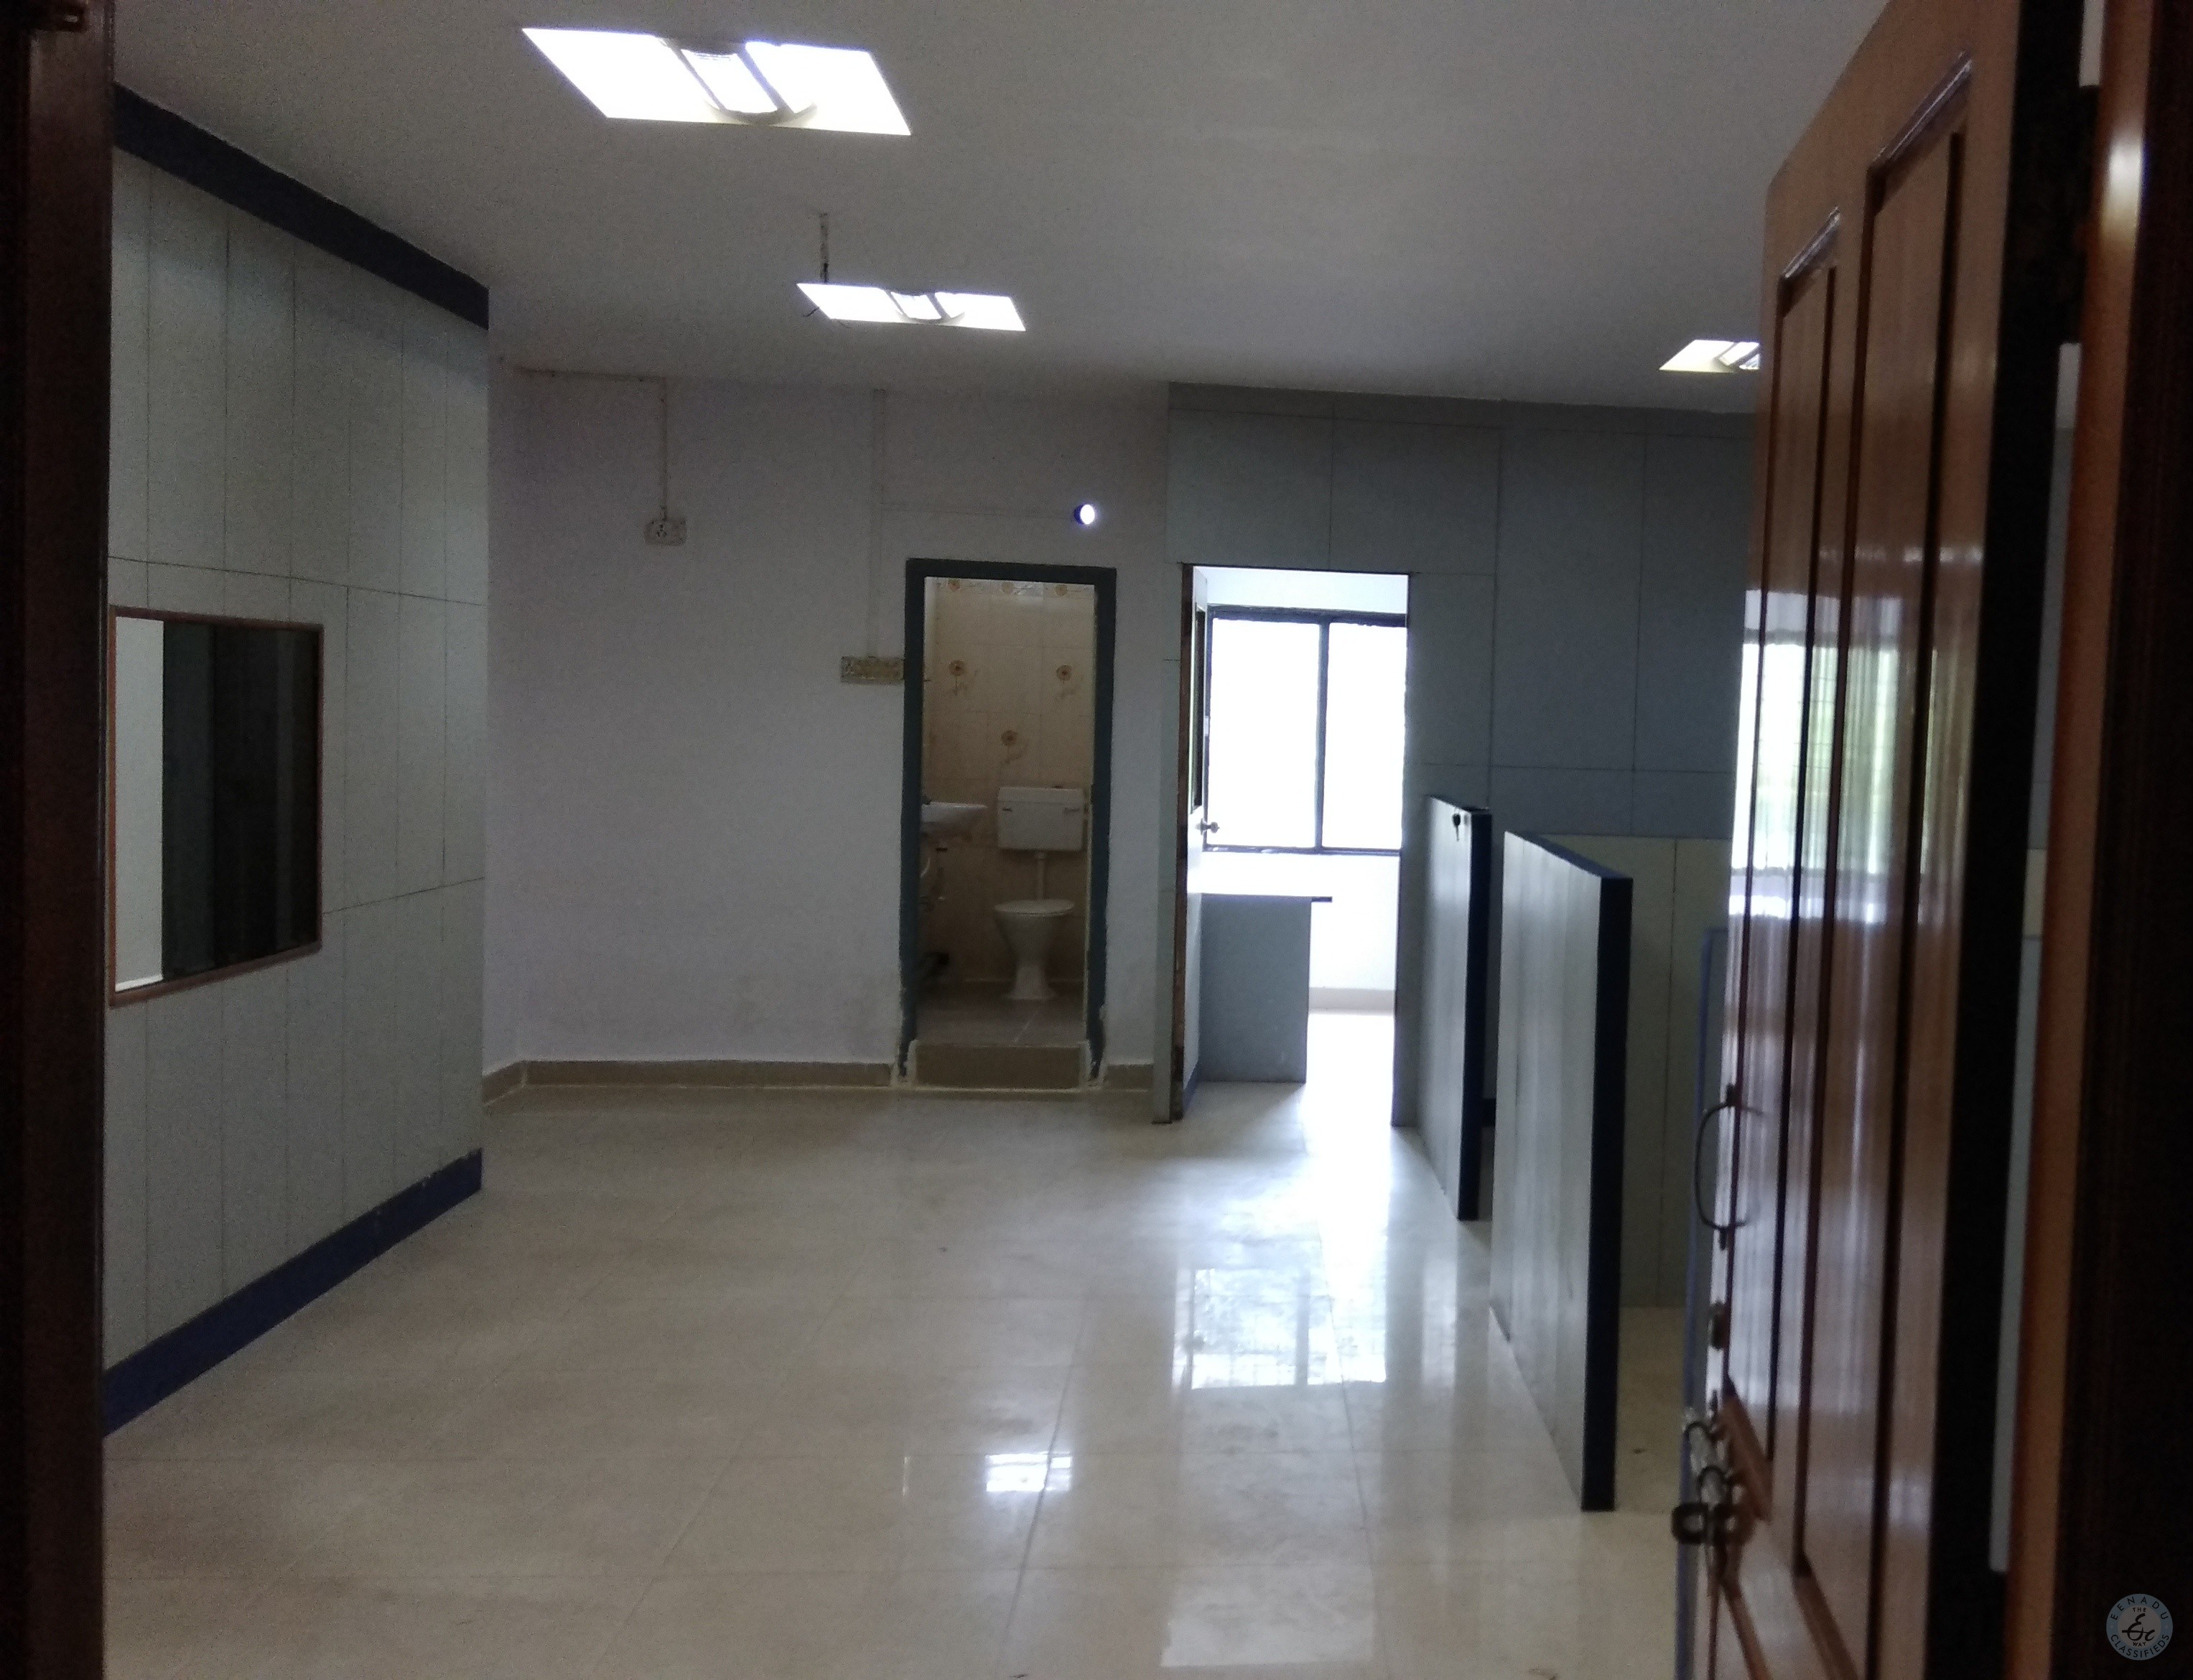 Office Space For Rent In Visakhapatnam